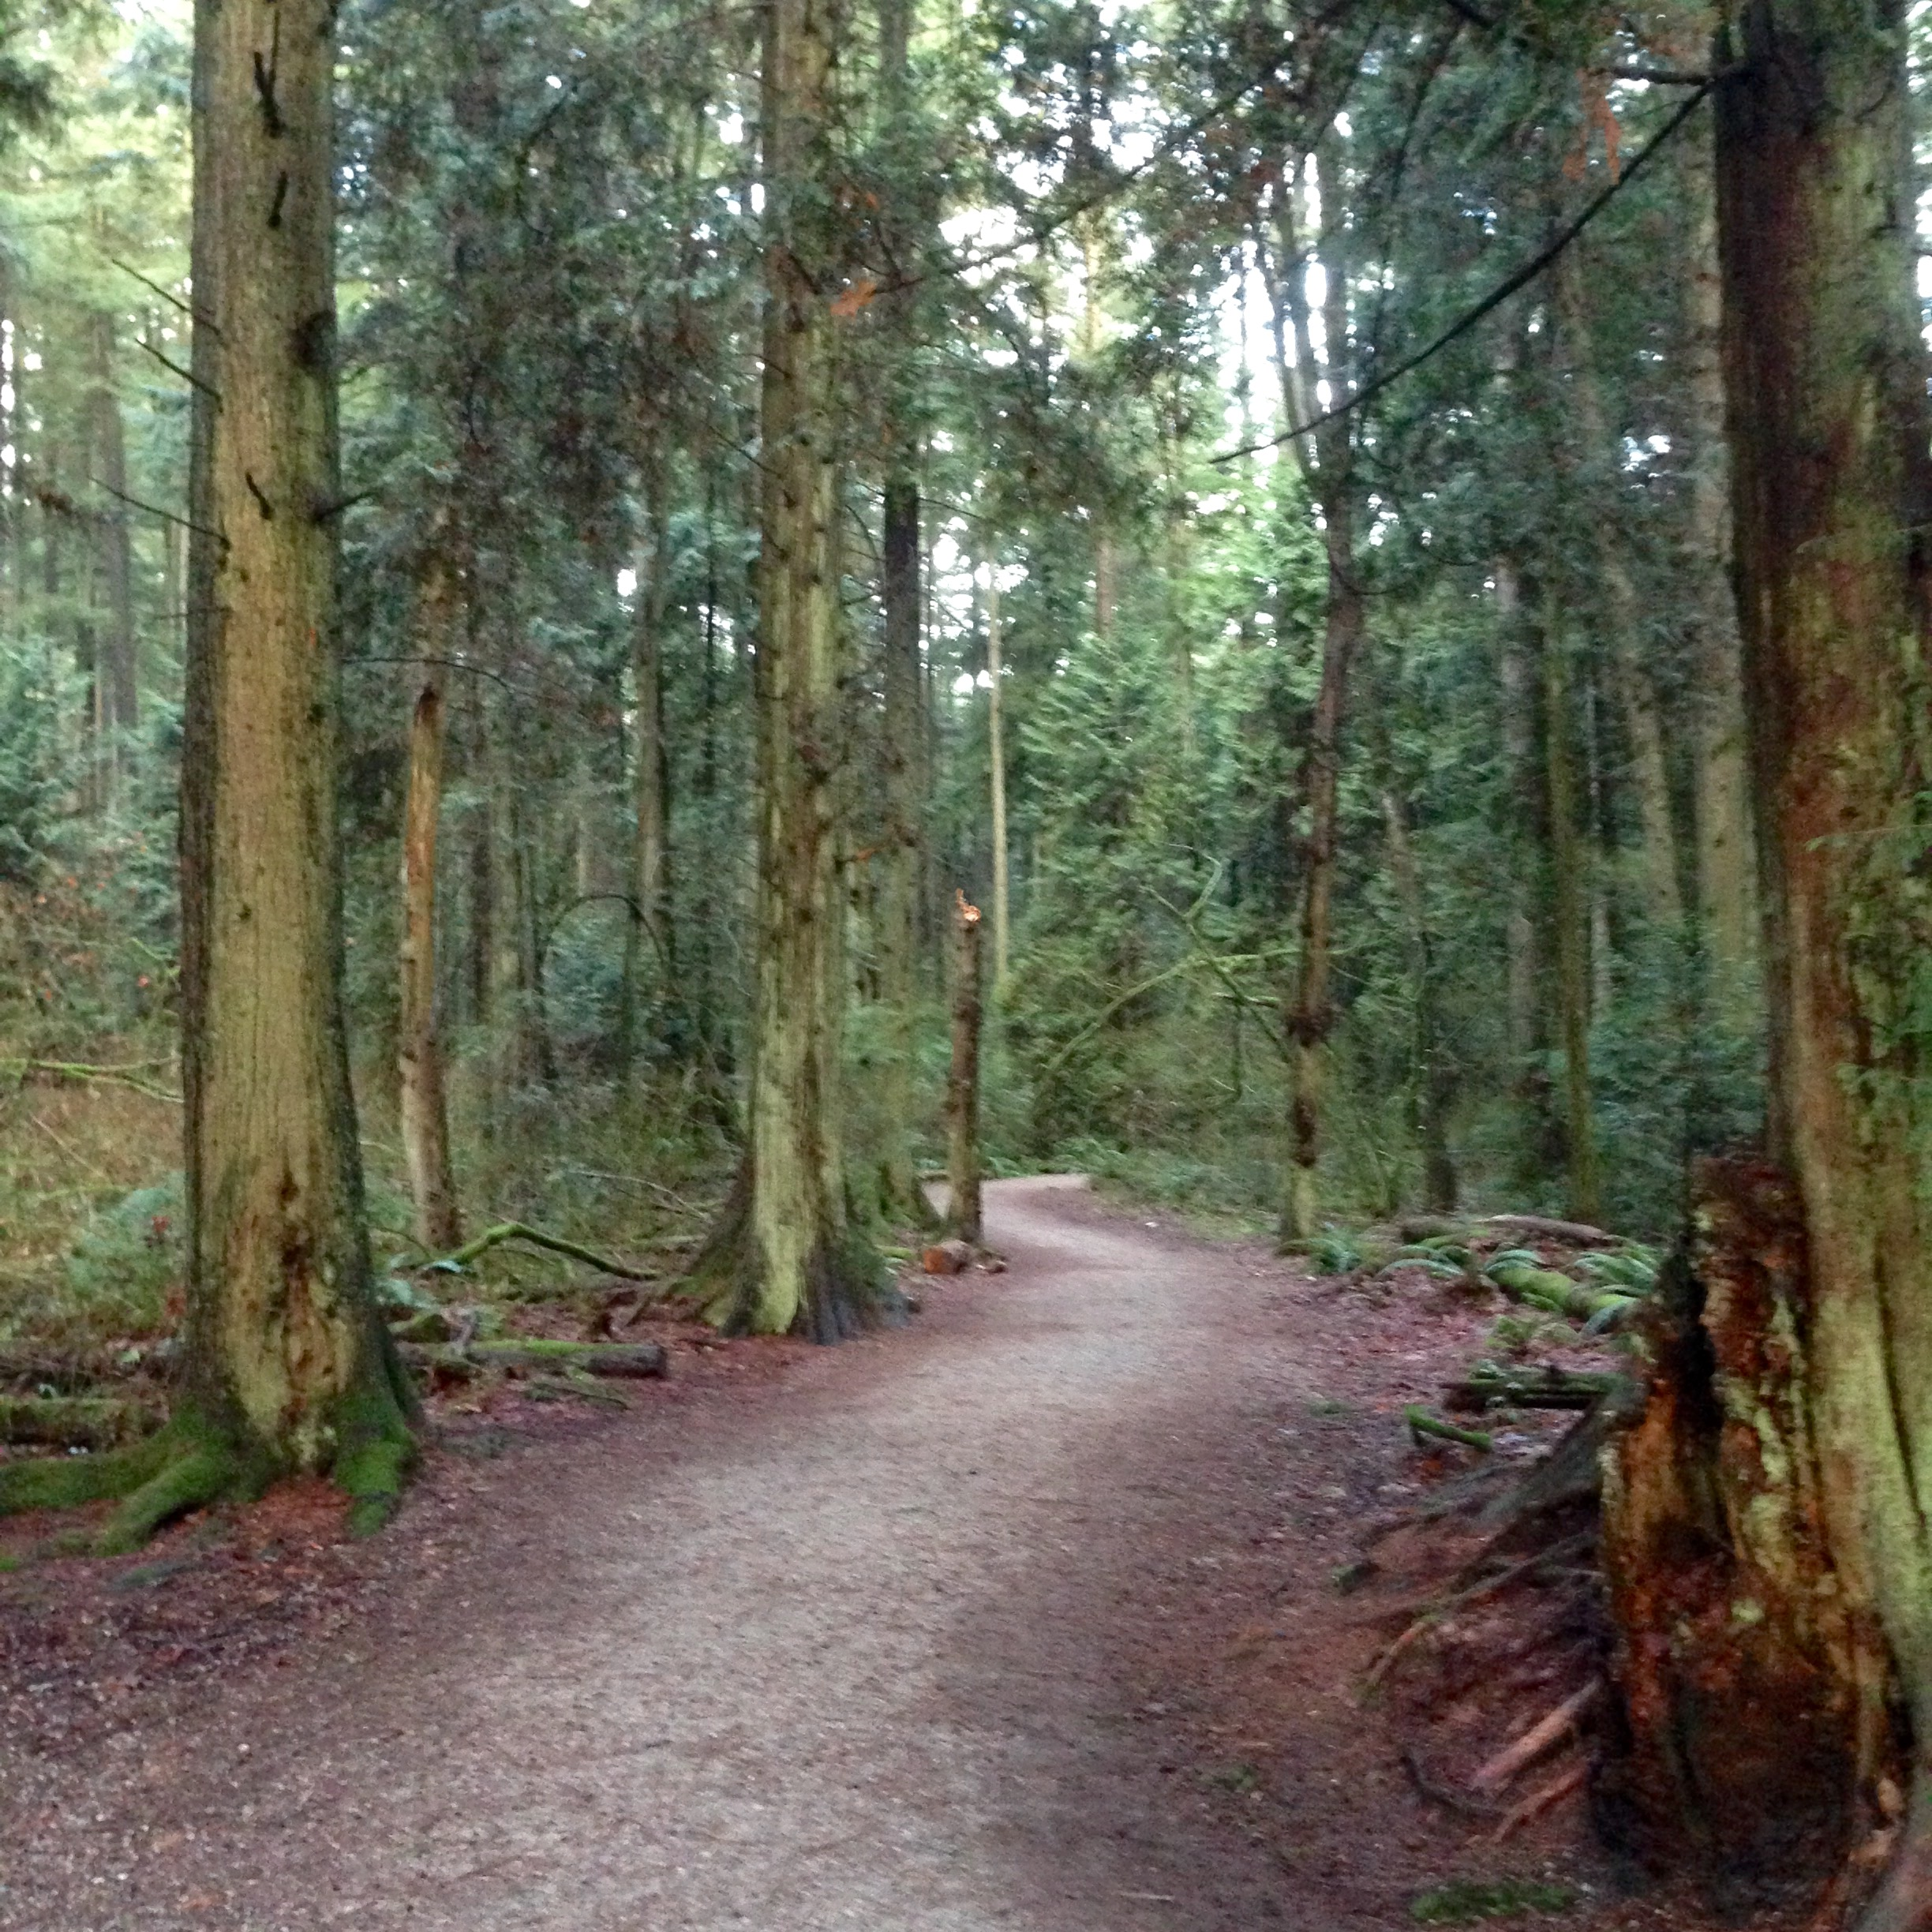 Running in the Endowment Land in Vancouver.